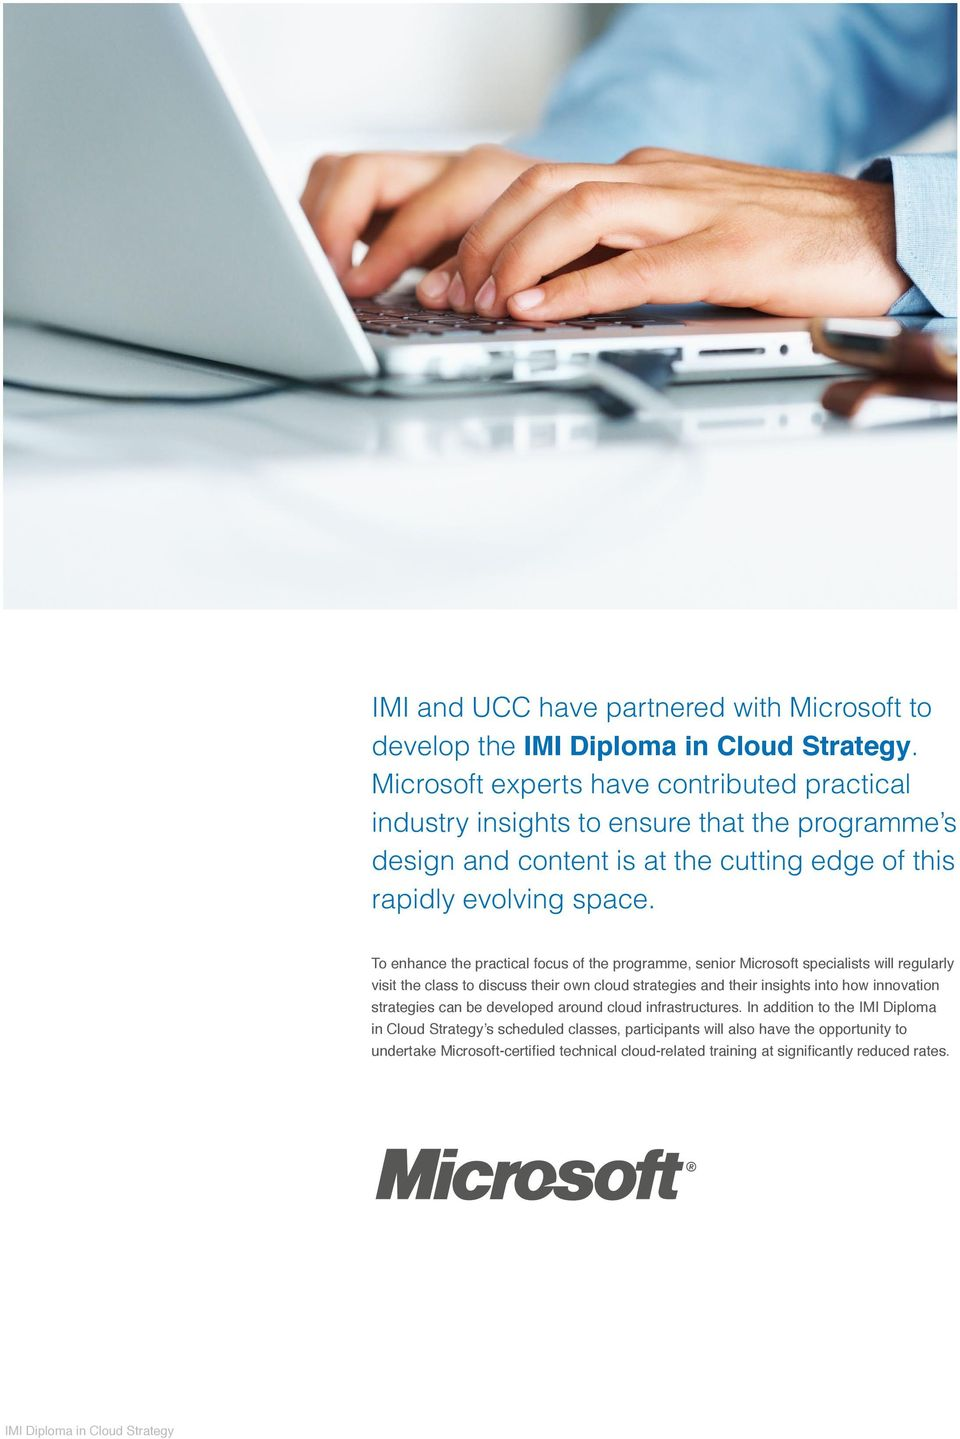 To enhance the practical focus of the programme, senior Microsoft specialists will regularly visit the class to discuss their own cloud strategies and their insights into